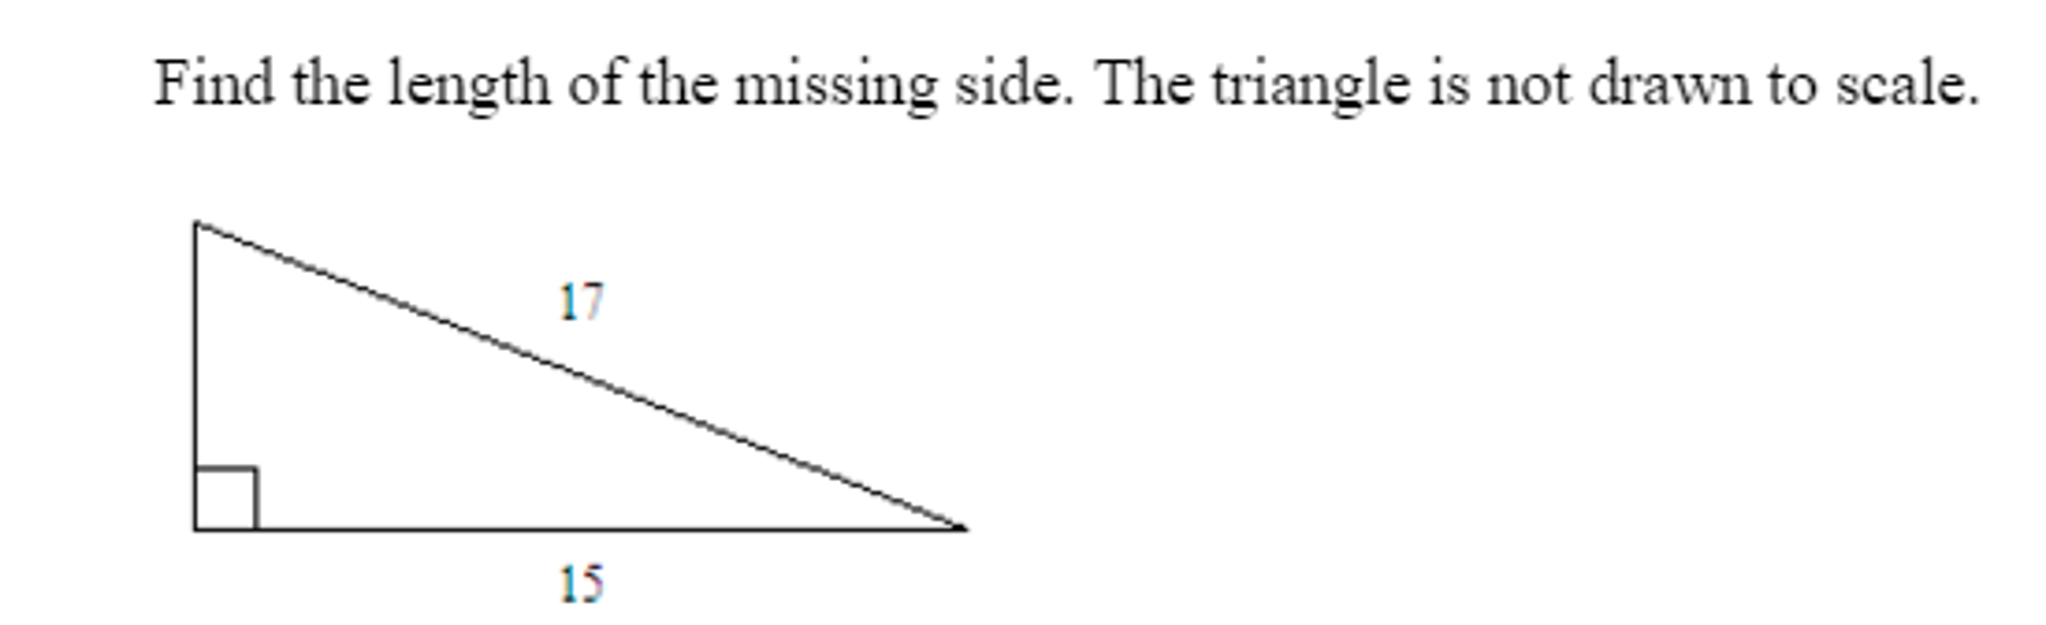 How to find the side of the triangle